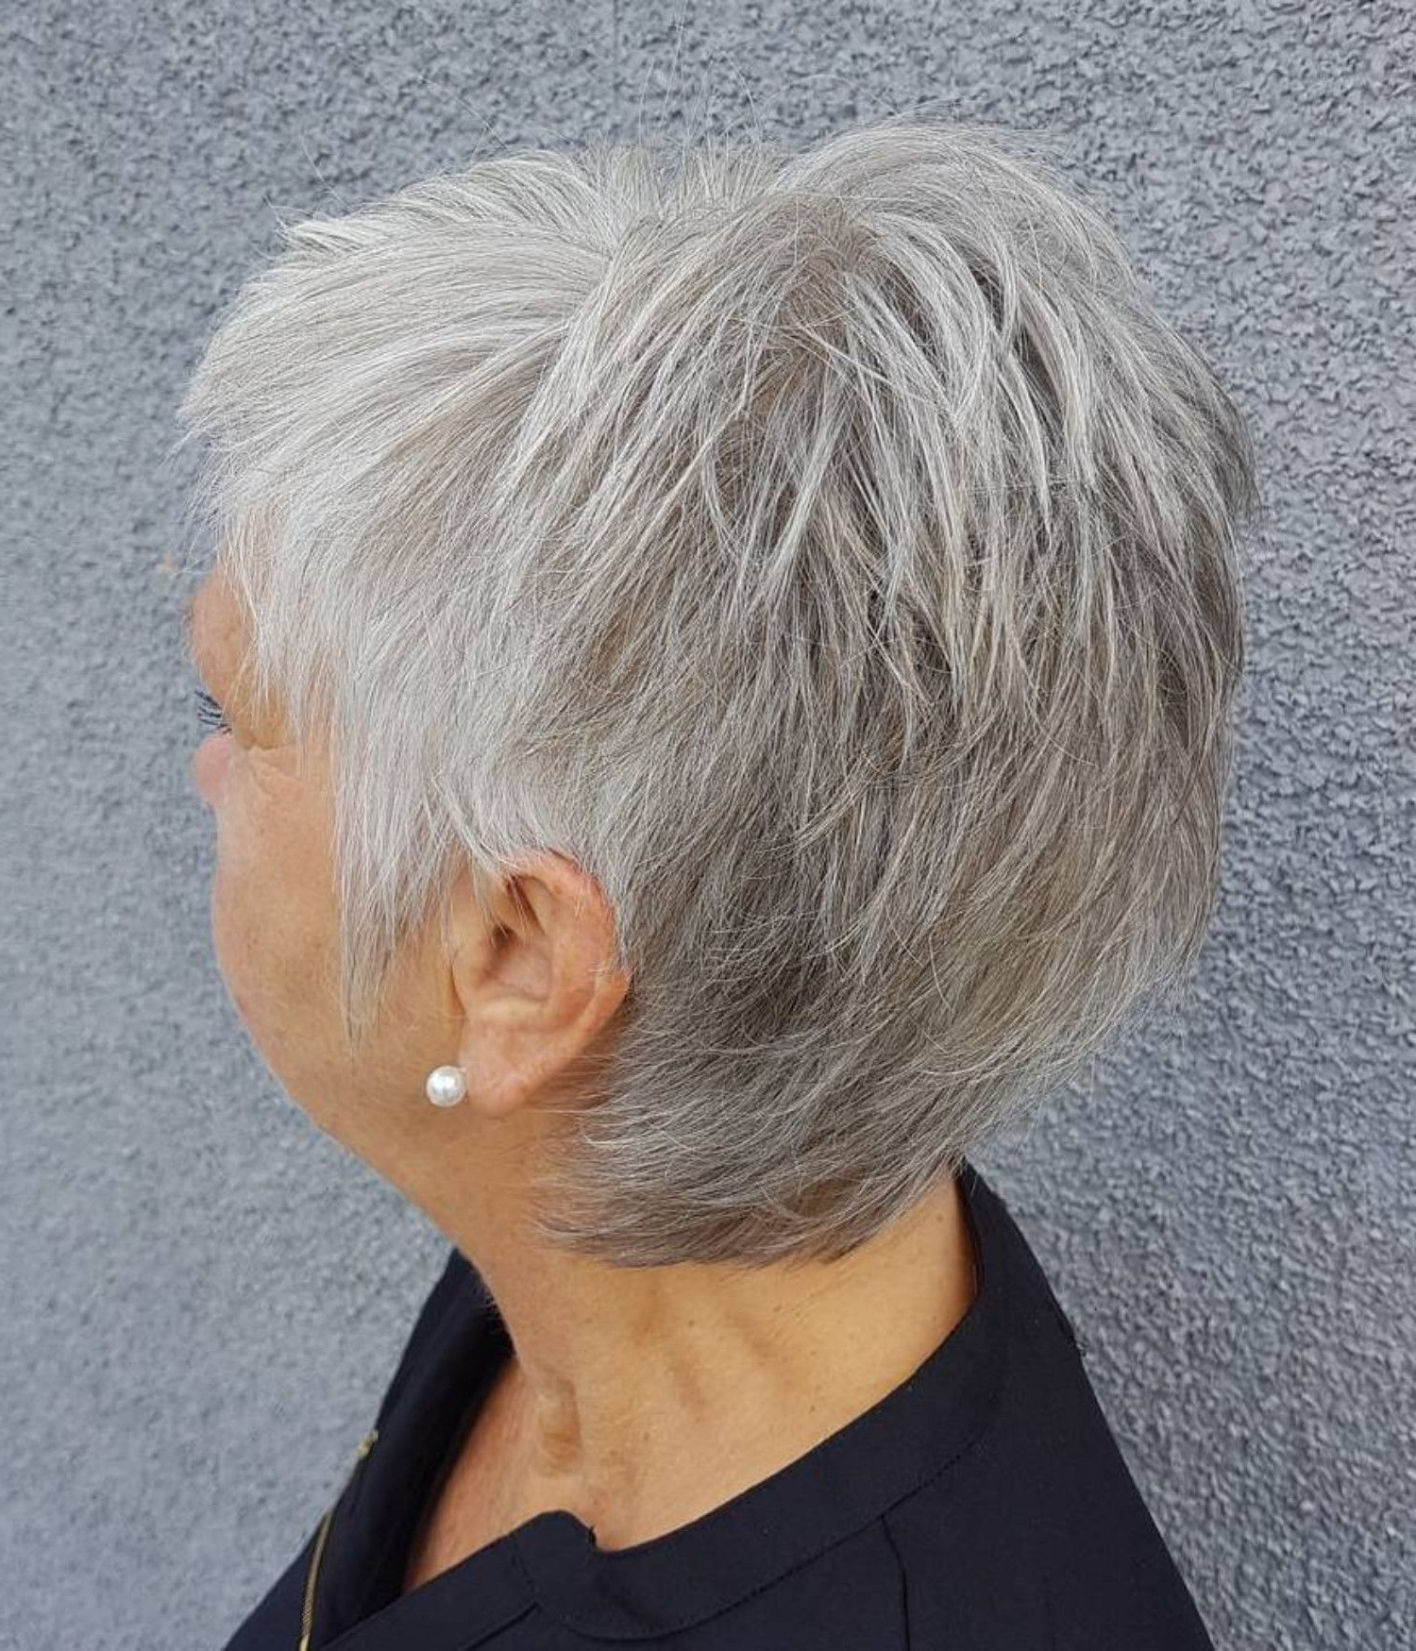 90 Classy And Simple Short Hairstyles For Women Over 50 In 2018 Inside Messy Salt And Pepper Pixie Hairstyles (Gallery 11 of 20)